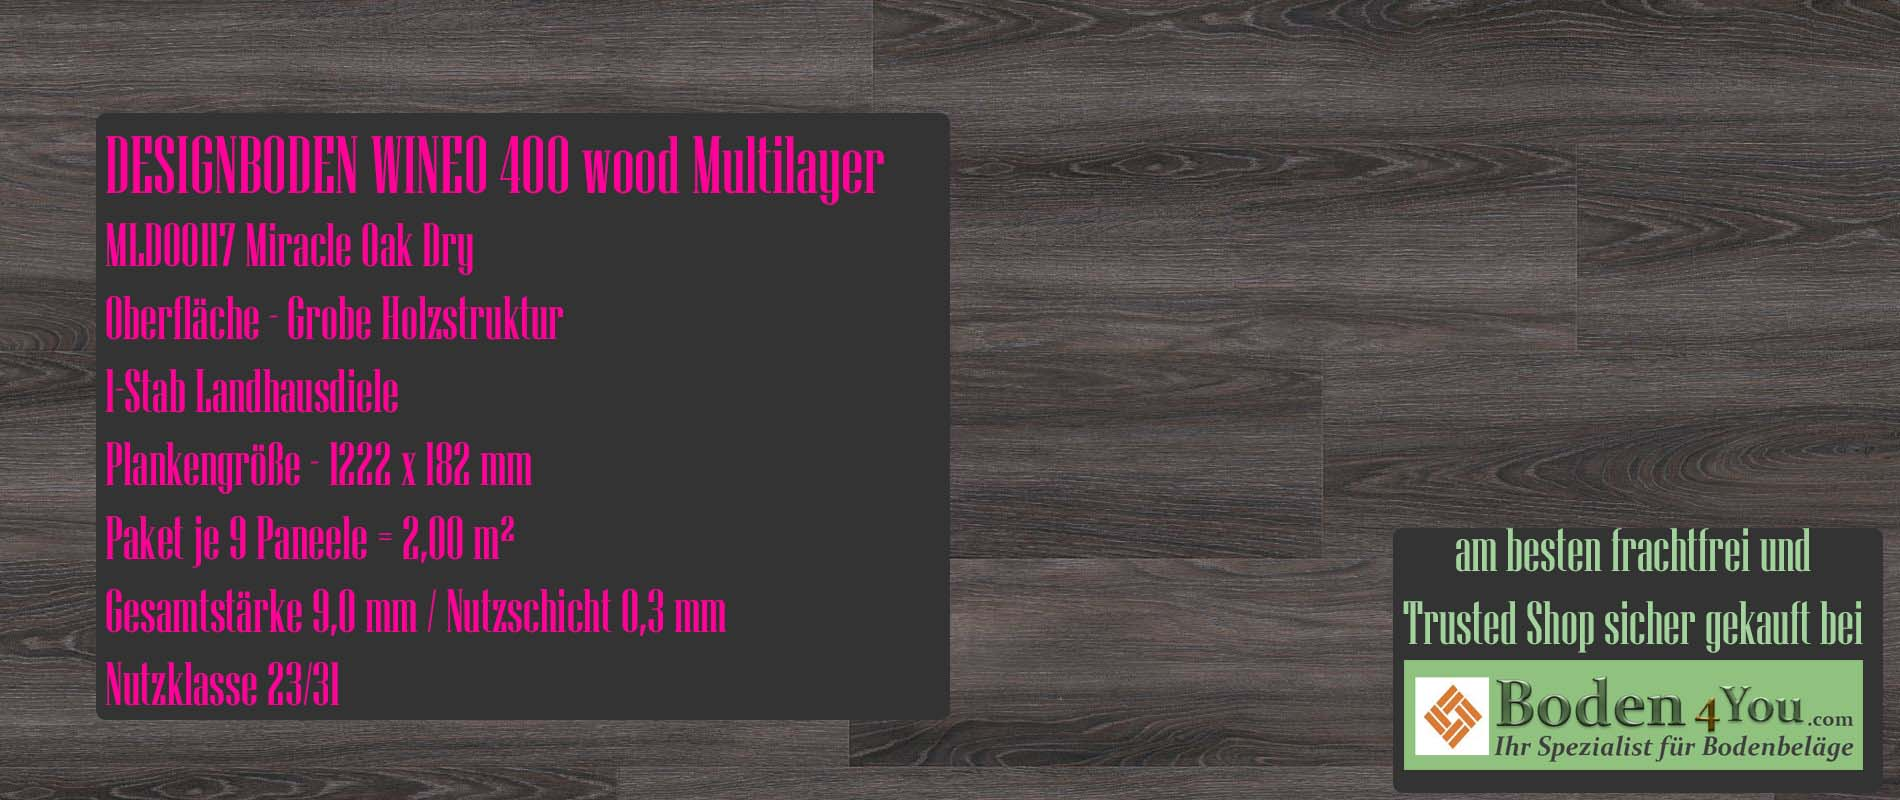 Wineo 400 Multilayer Miracle Oak Dry @ Boden4You.com Design Bodenbelag günstig und Trsuted Shop sicher kaufen